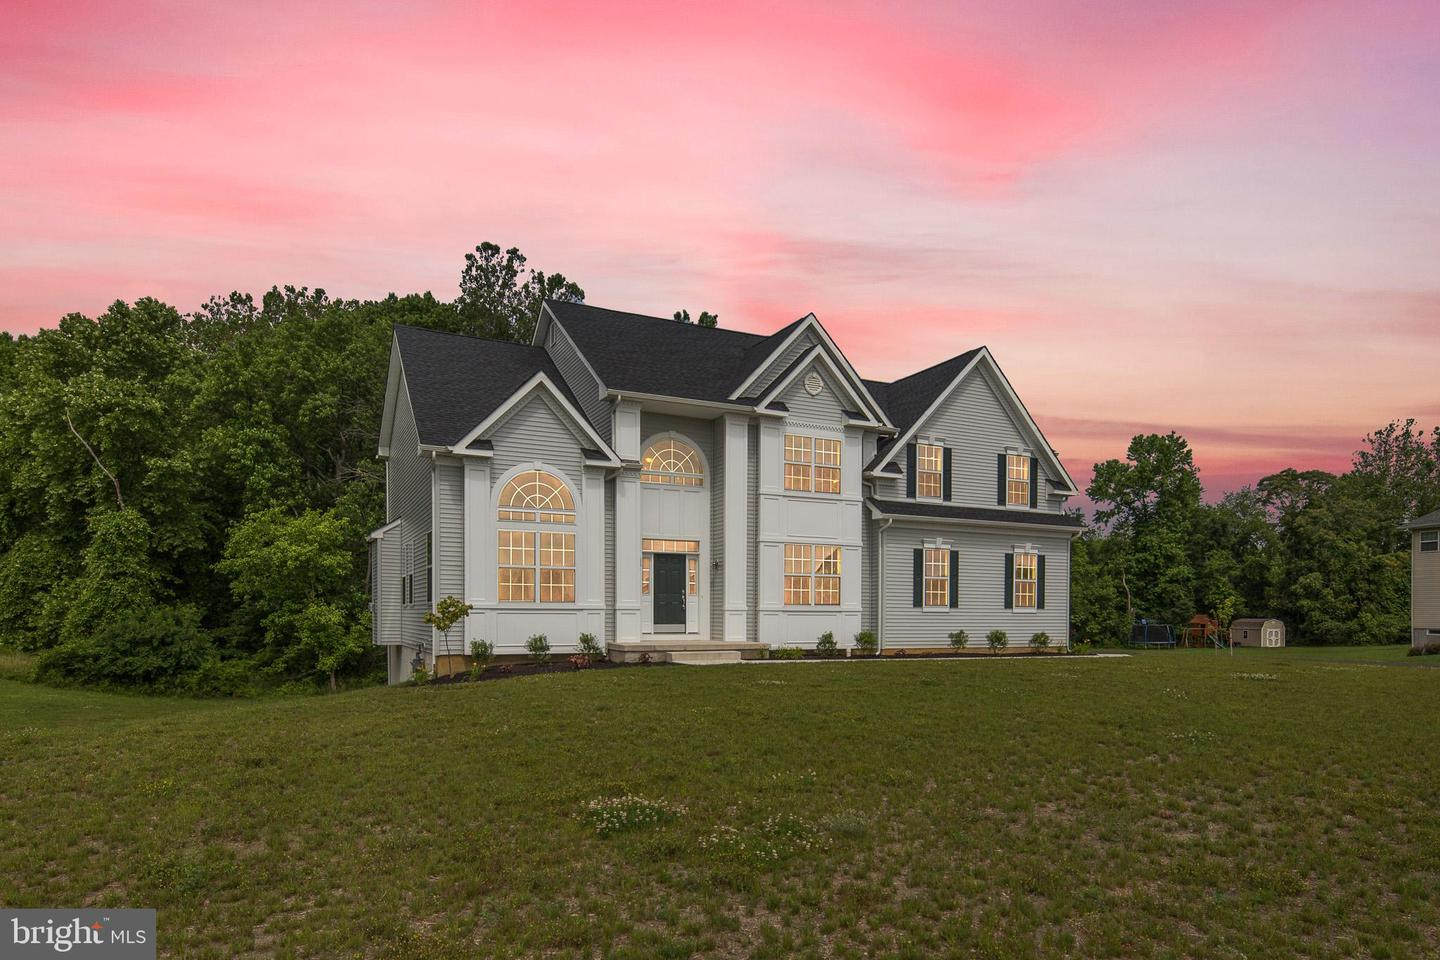 16 PALOMINO CIR, MANTUA, NJ 08051